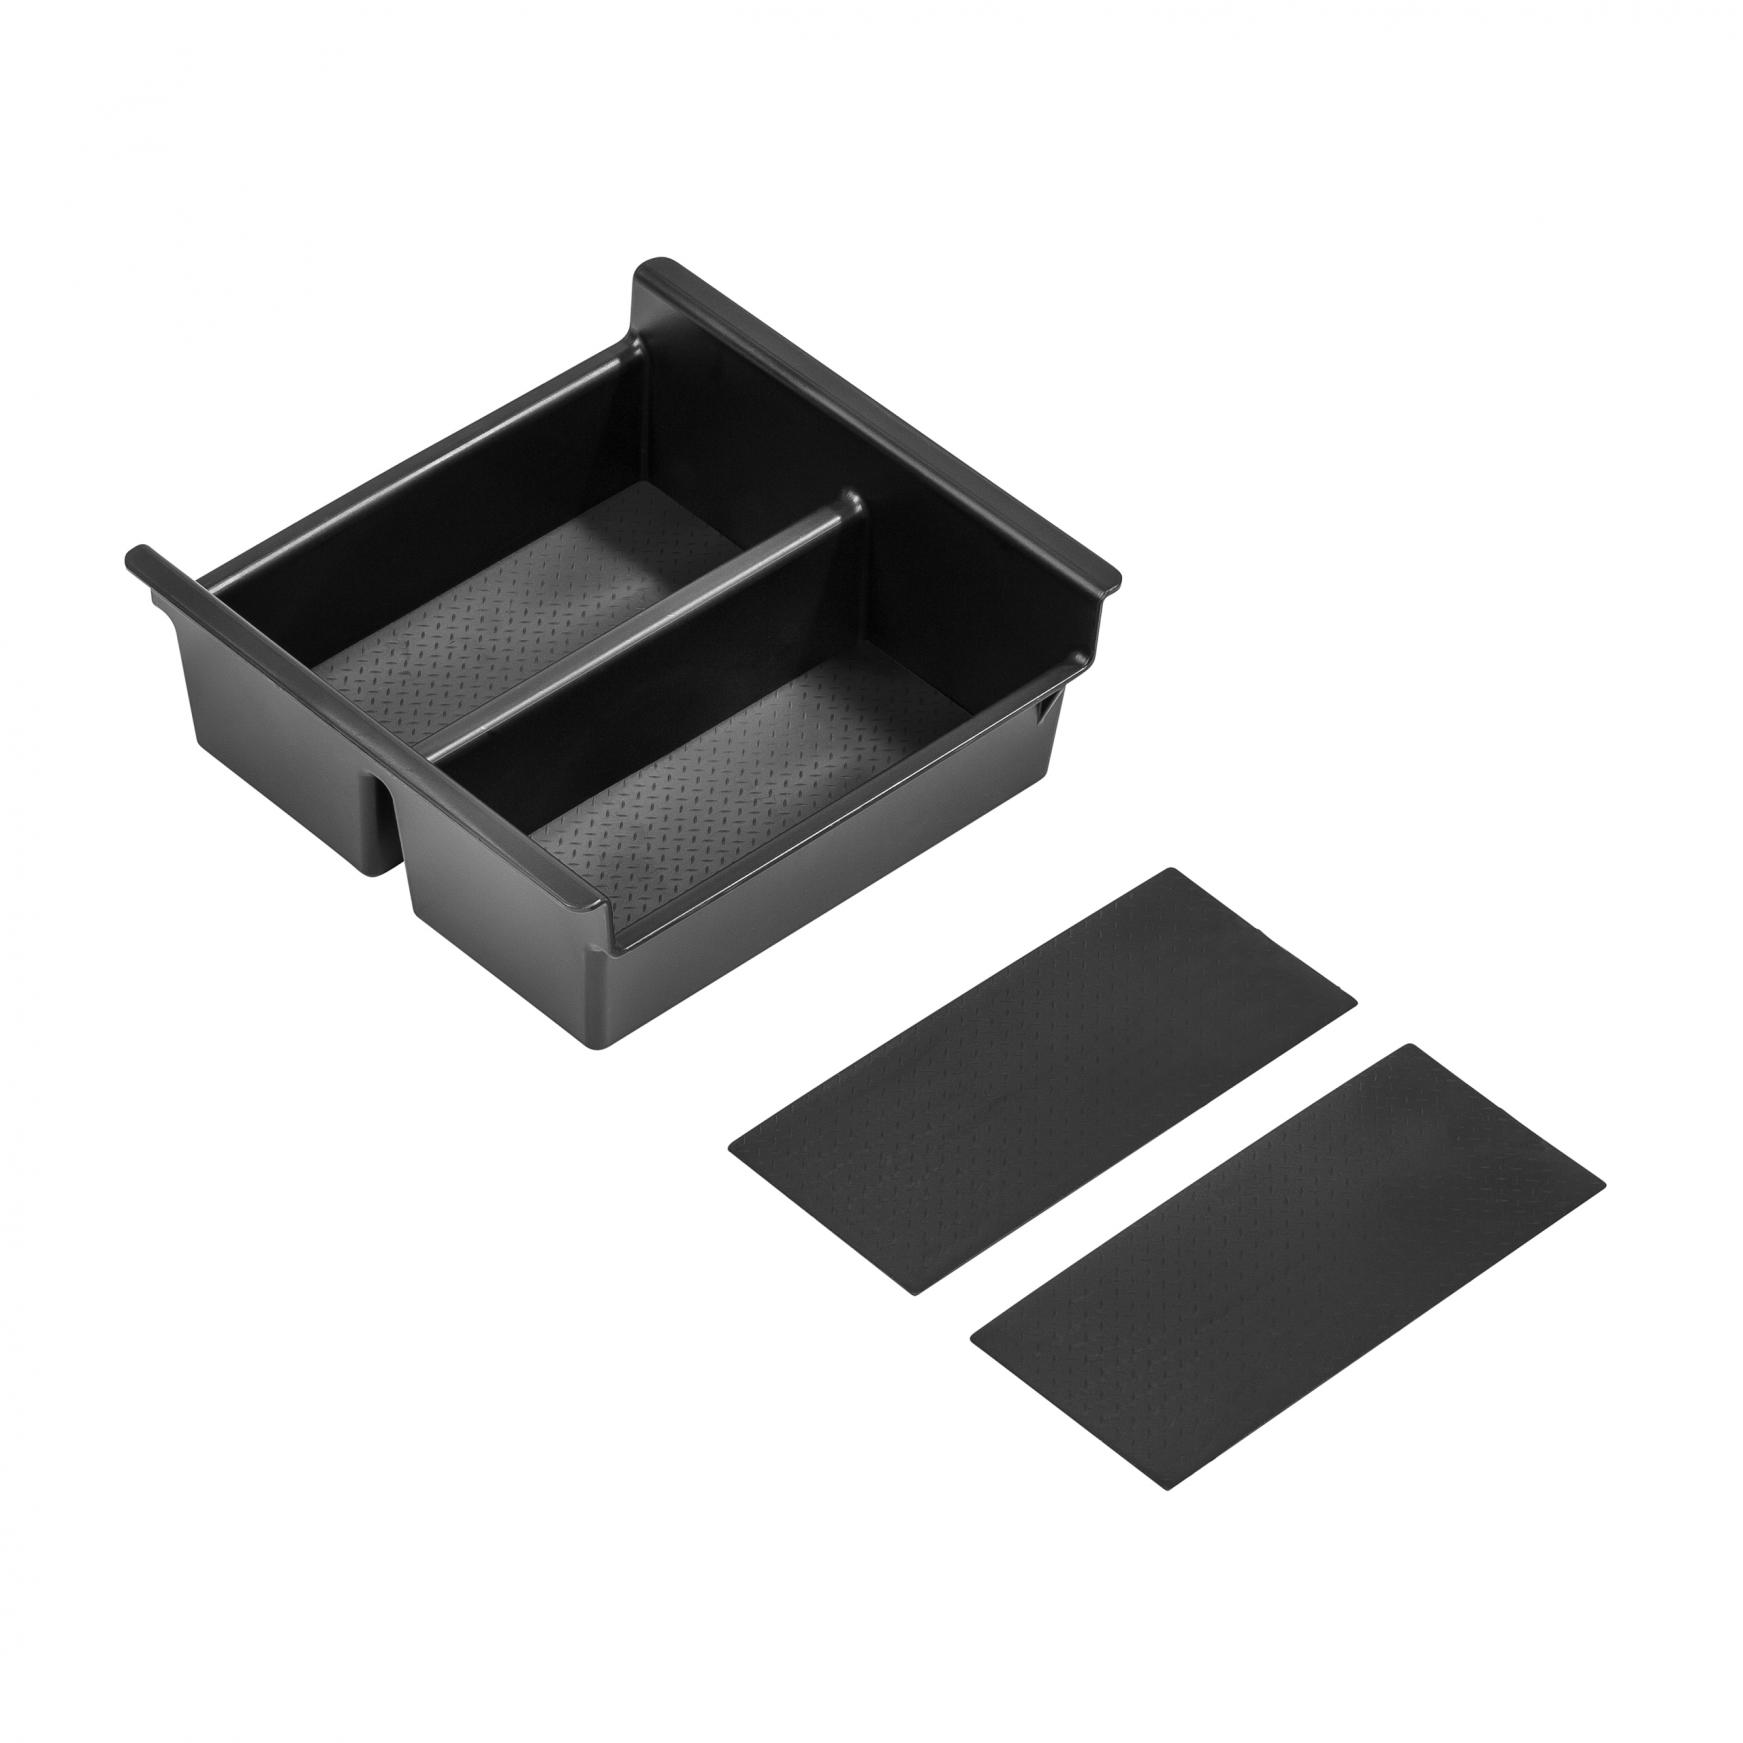 5th gen T4R Center Console Tray from Salex Organizers-slx124-vehicle-ocd-toyota-4runner-center-console-organizer-tray-liner-jpg